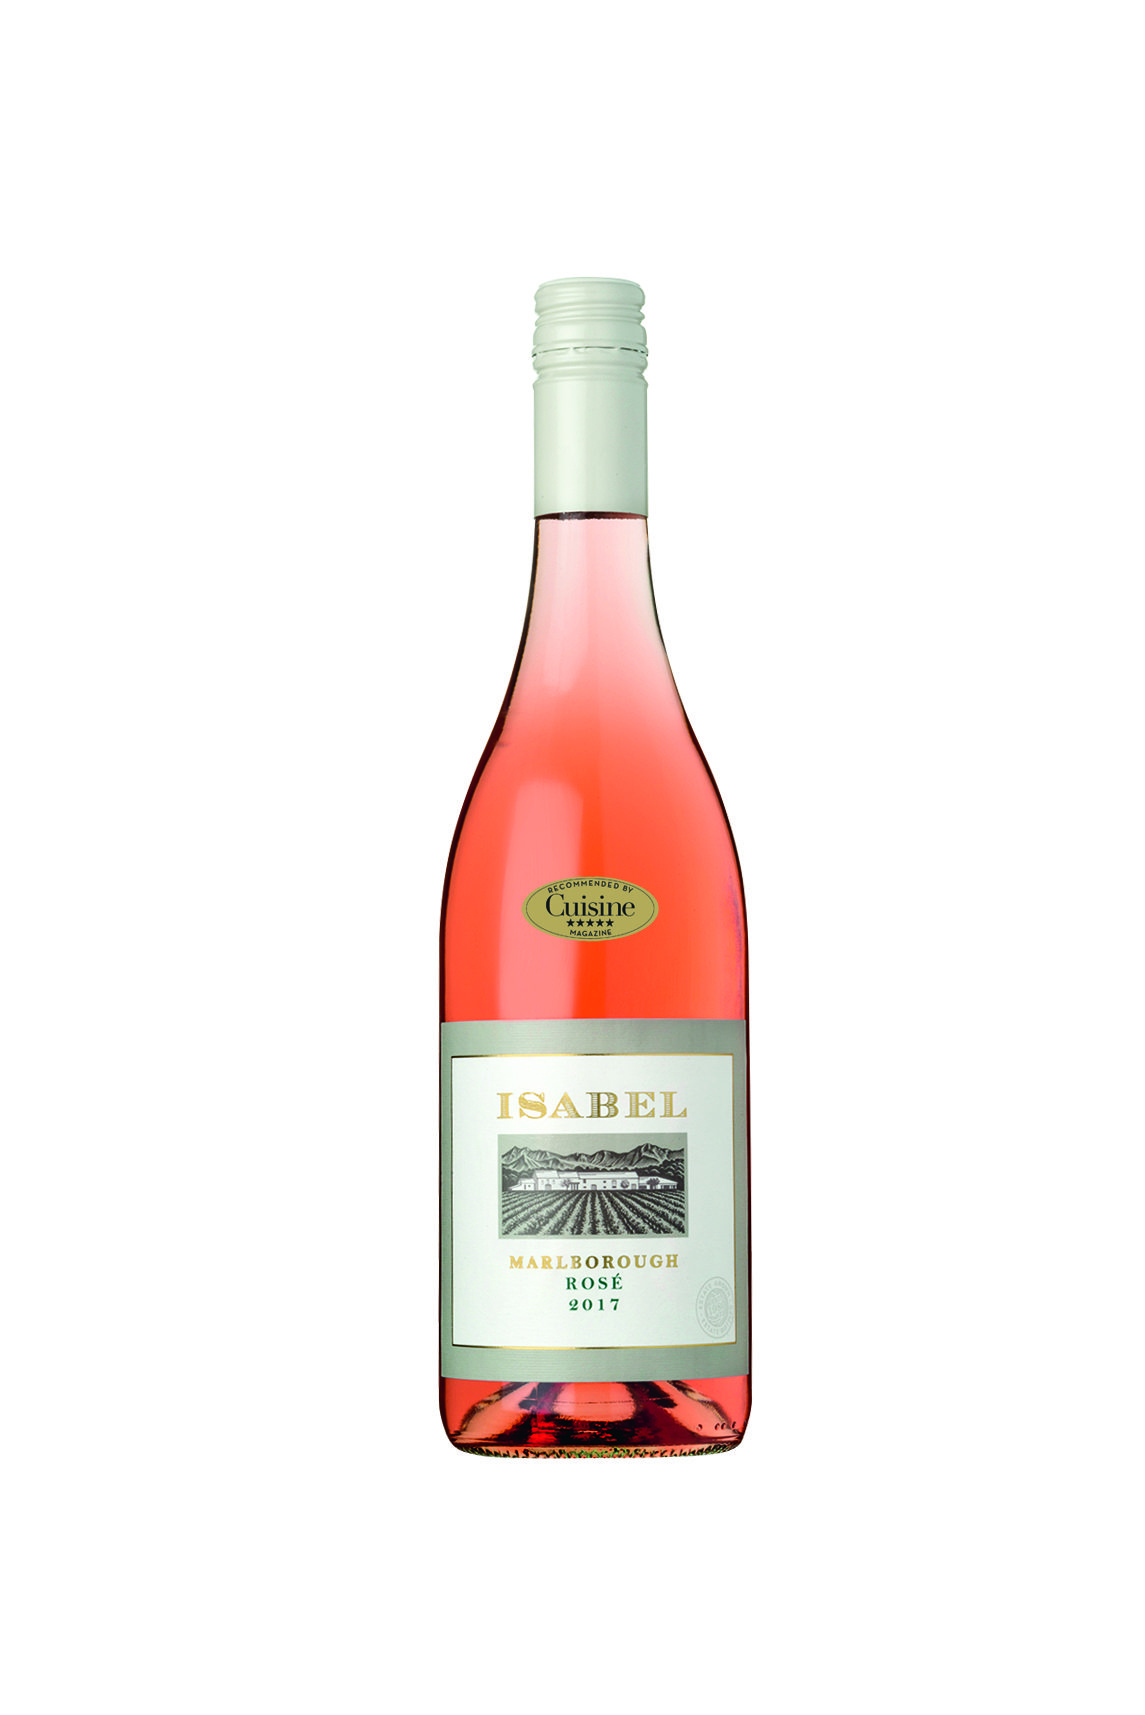 Isabel Marlborough Rosé 2017